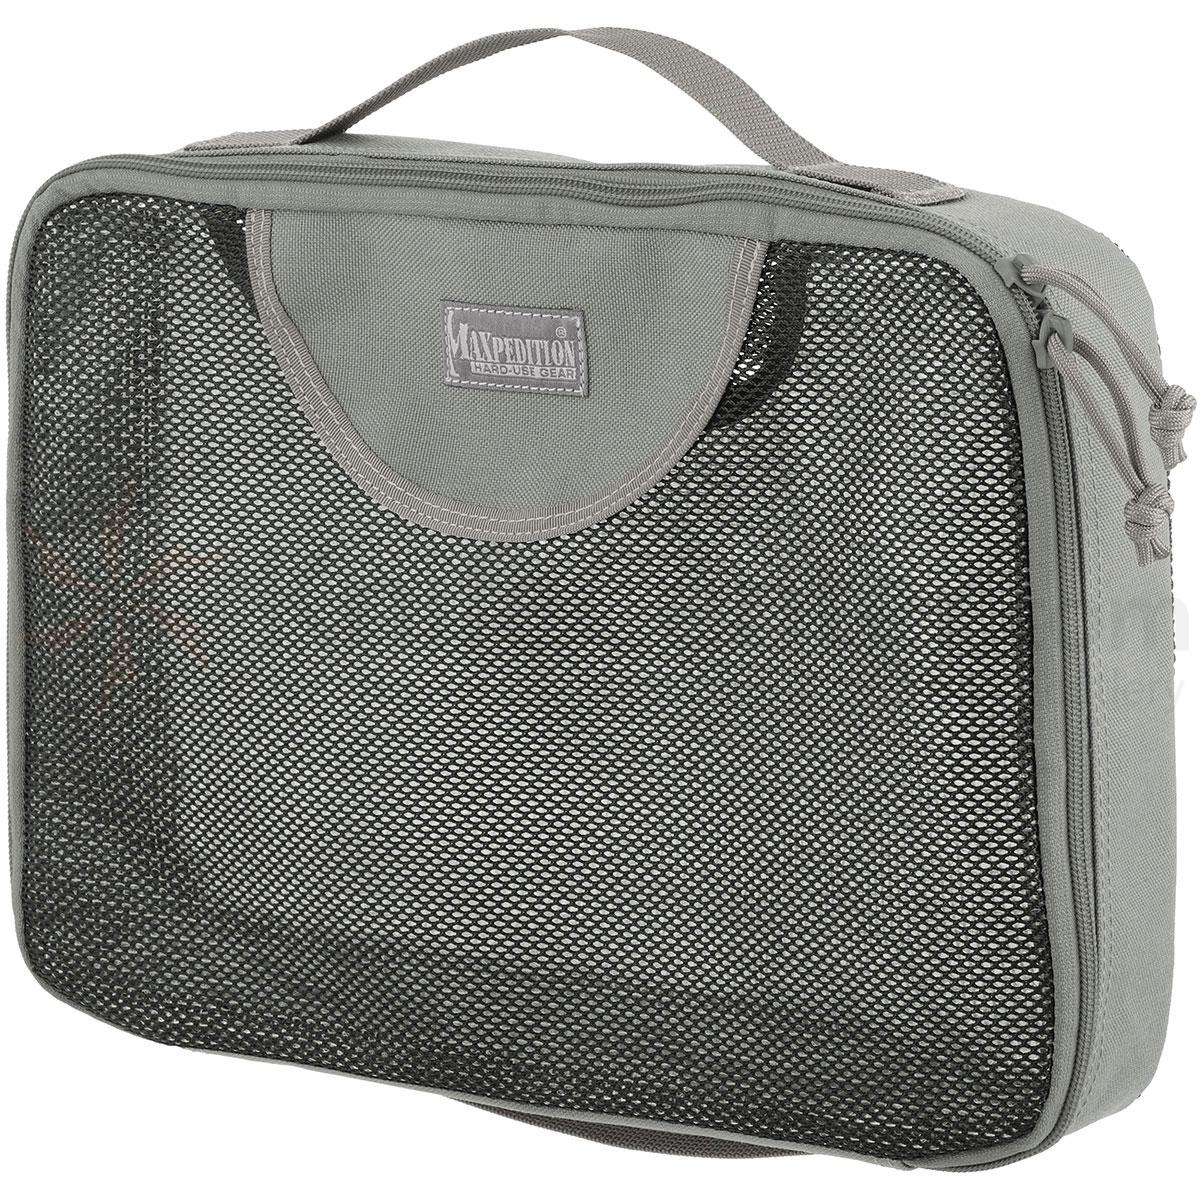 Maxpedition 1802F Cuboid - Large Organizer, Foliage Green